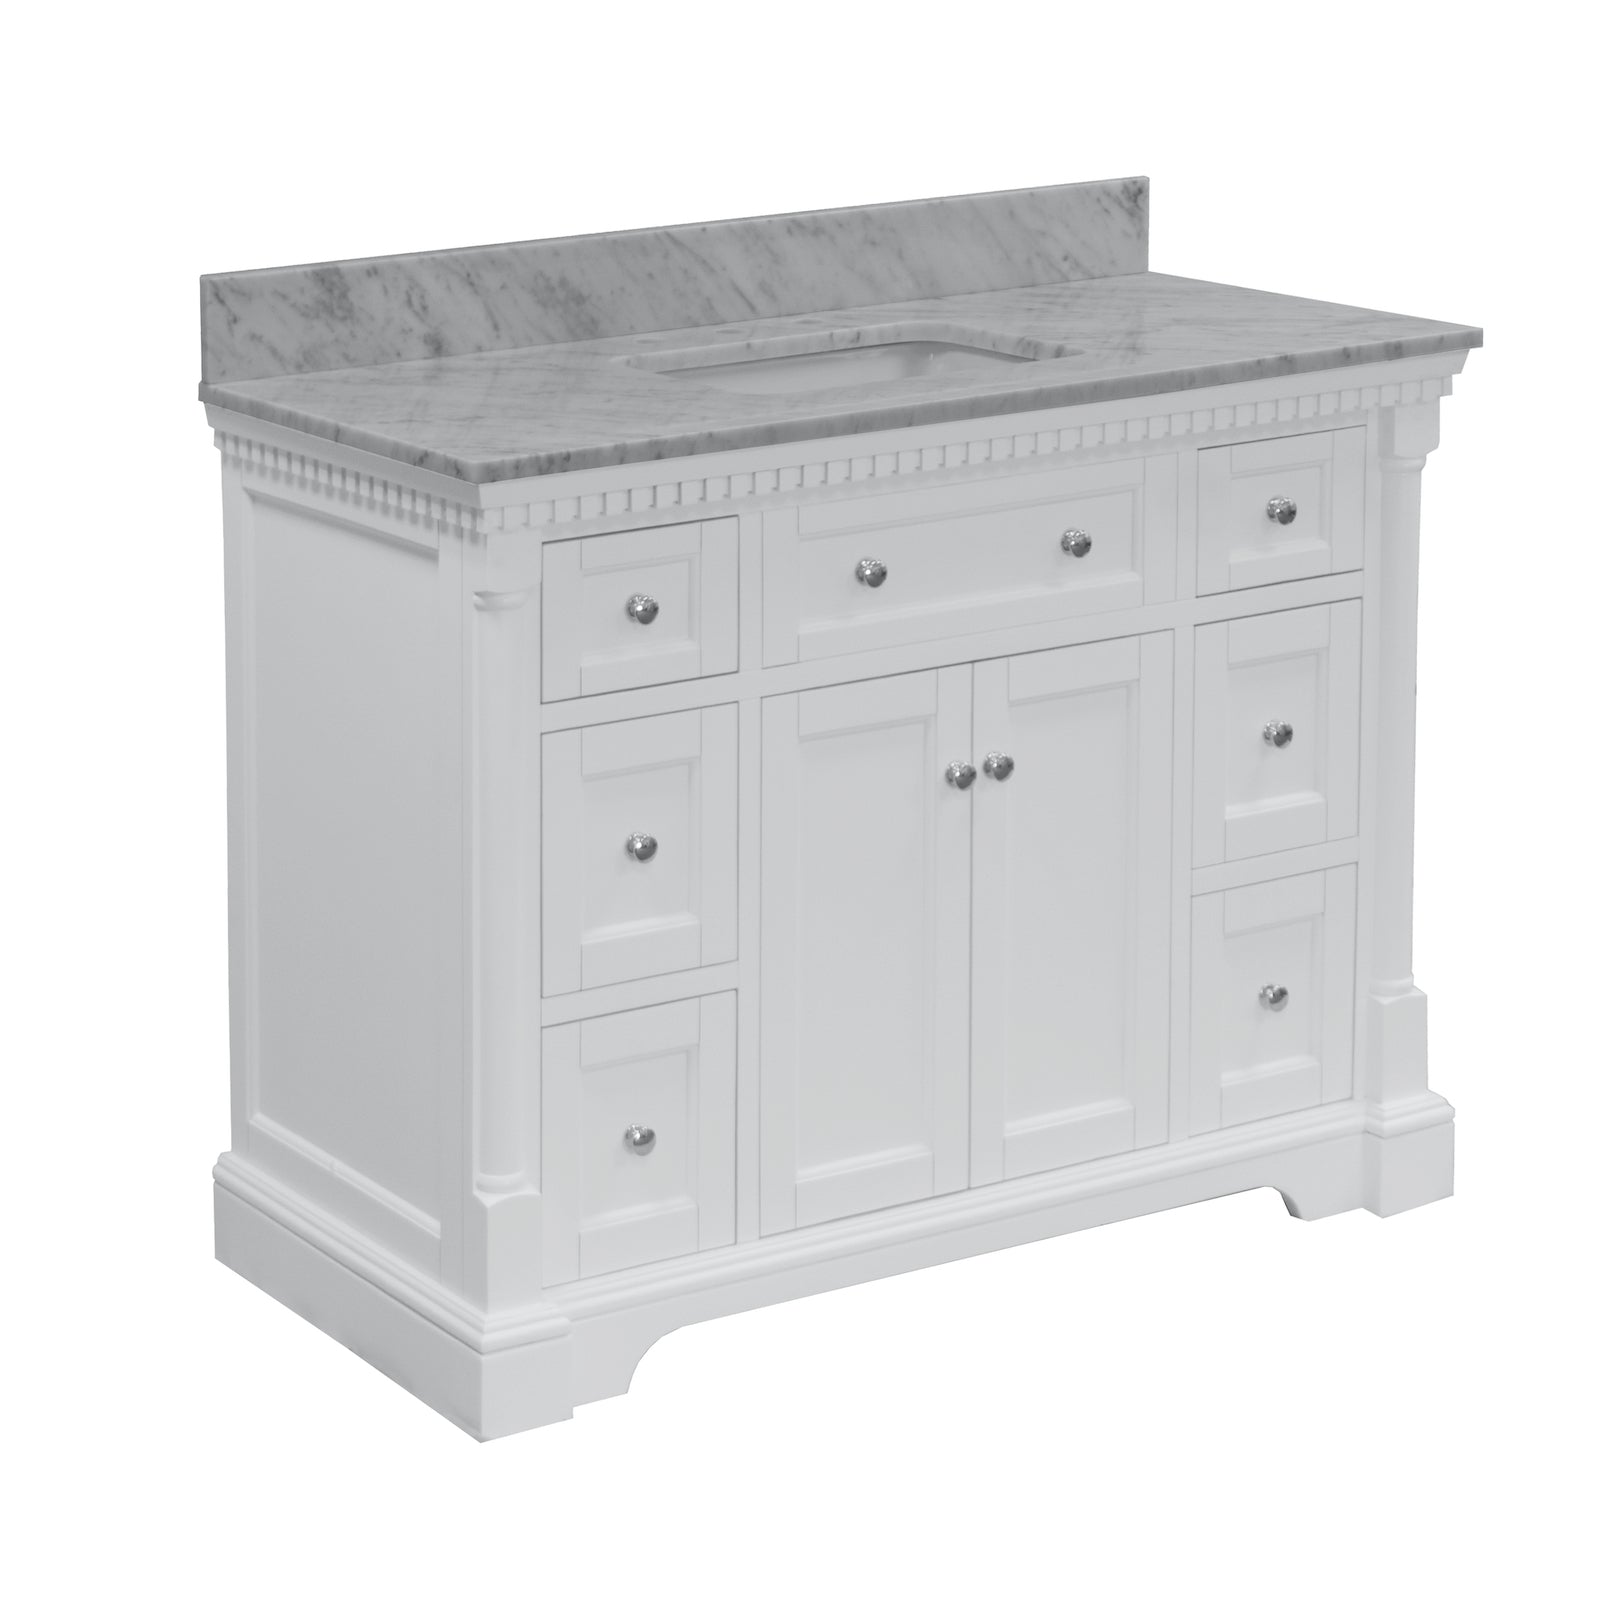 Sydney 48 Freestanding Bathroom Vanity With Carrara Marble Top Kitchenbathcollection